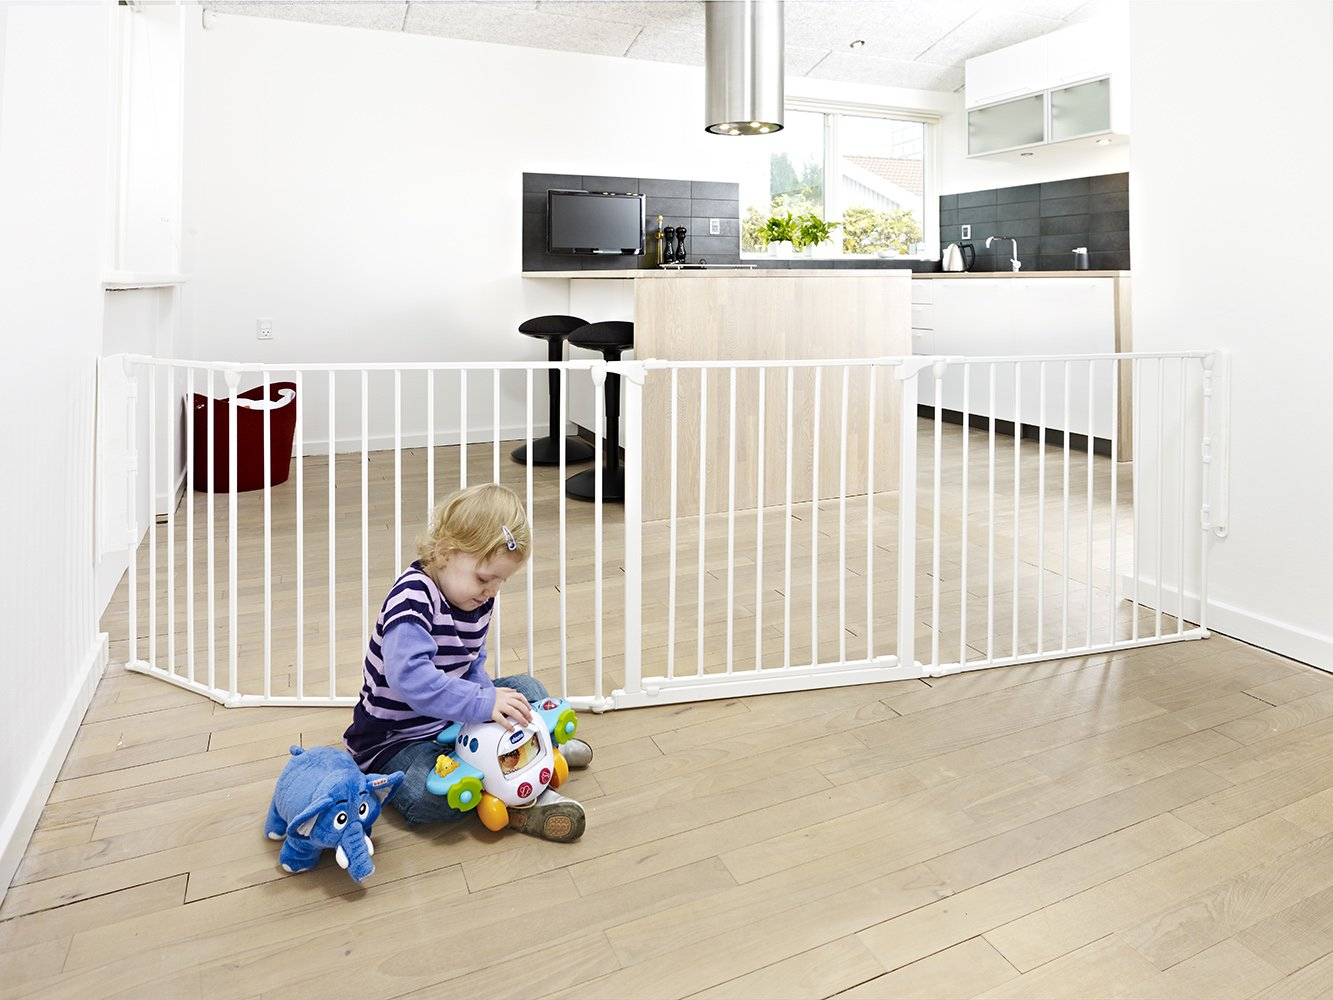 BabyDan Configure (Large 90-223cm, White)  Only configure system fulfilling newest European safety standard Multi purpose room divider and gate for wider openings Flexible and easy to fit 5